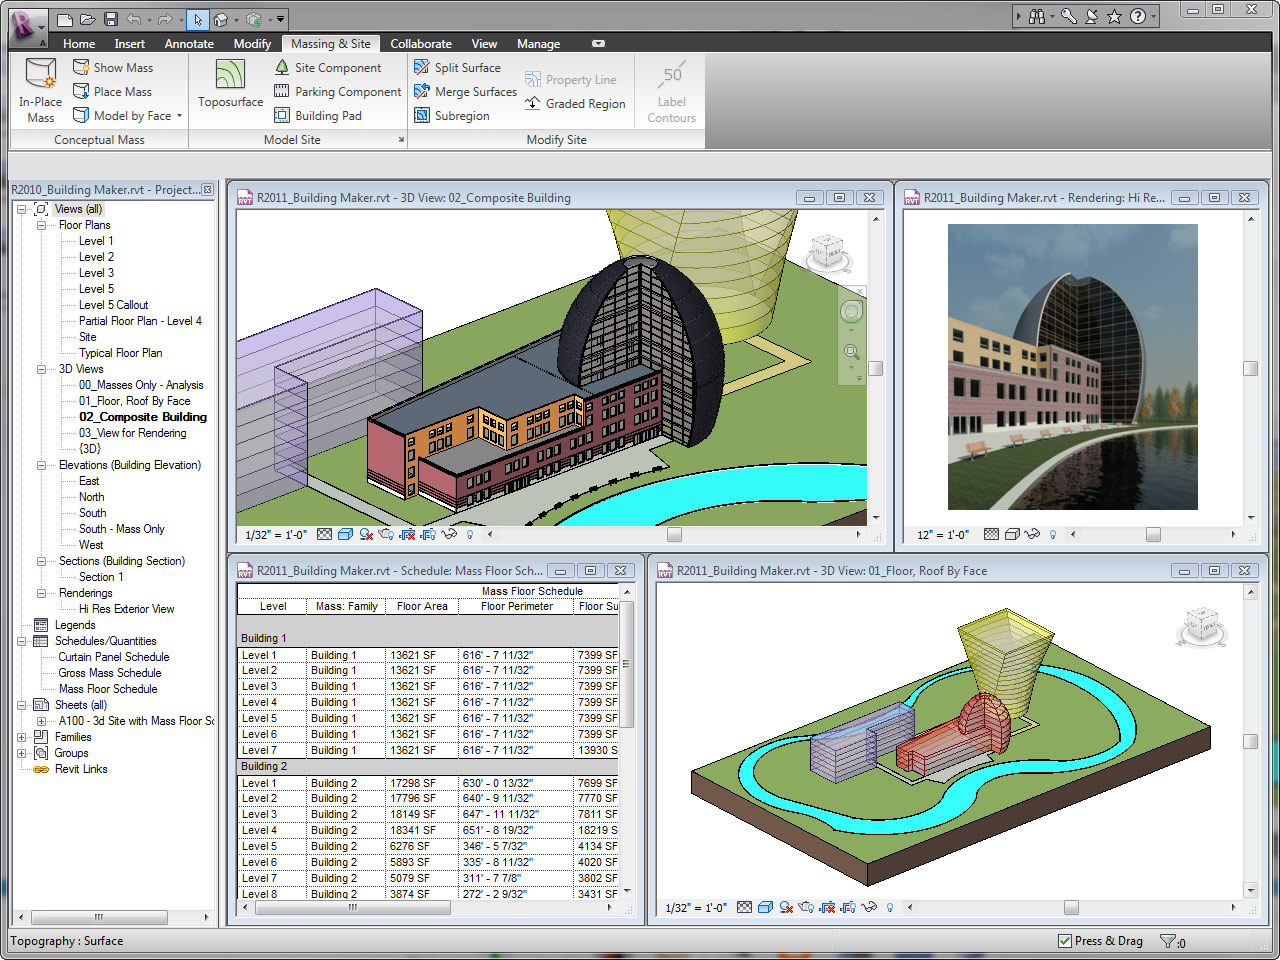 revit architecture 2014 download full version with crack